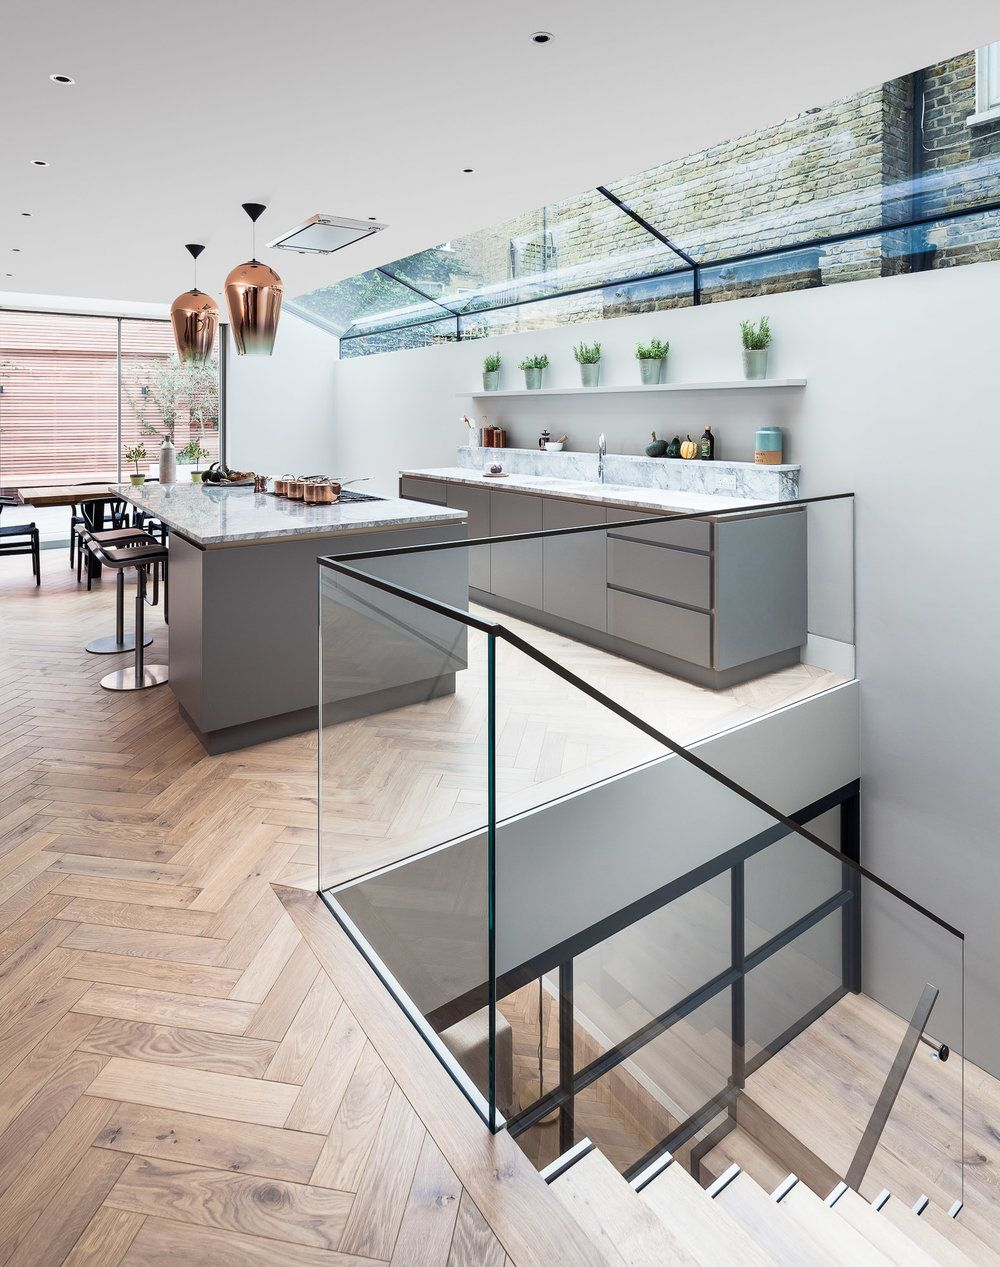 Kitchen and stairs down to basement. Glass balustrade ...